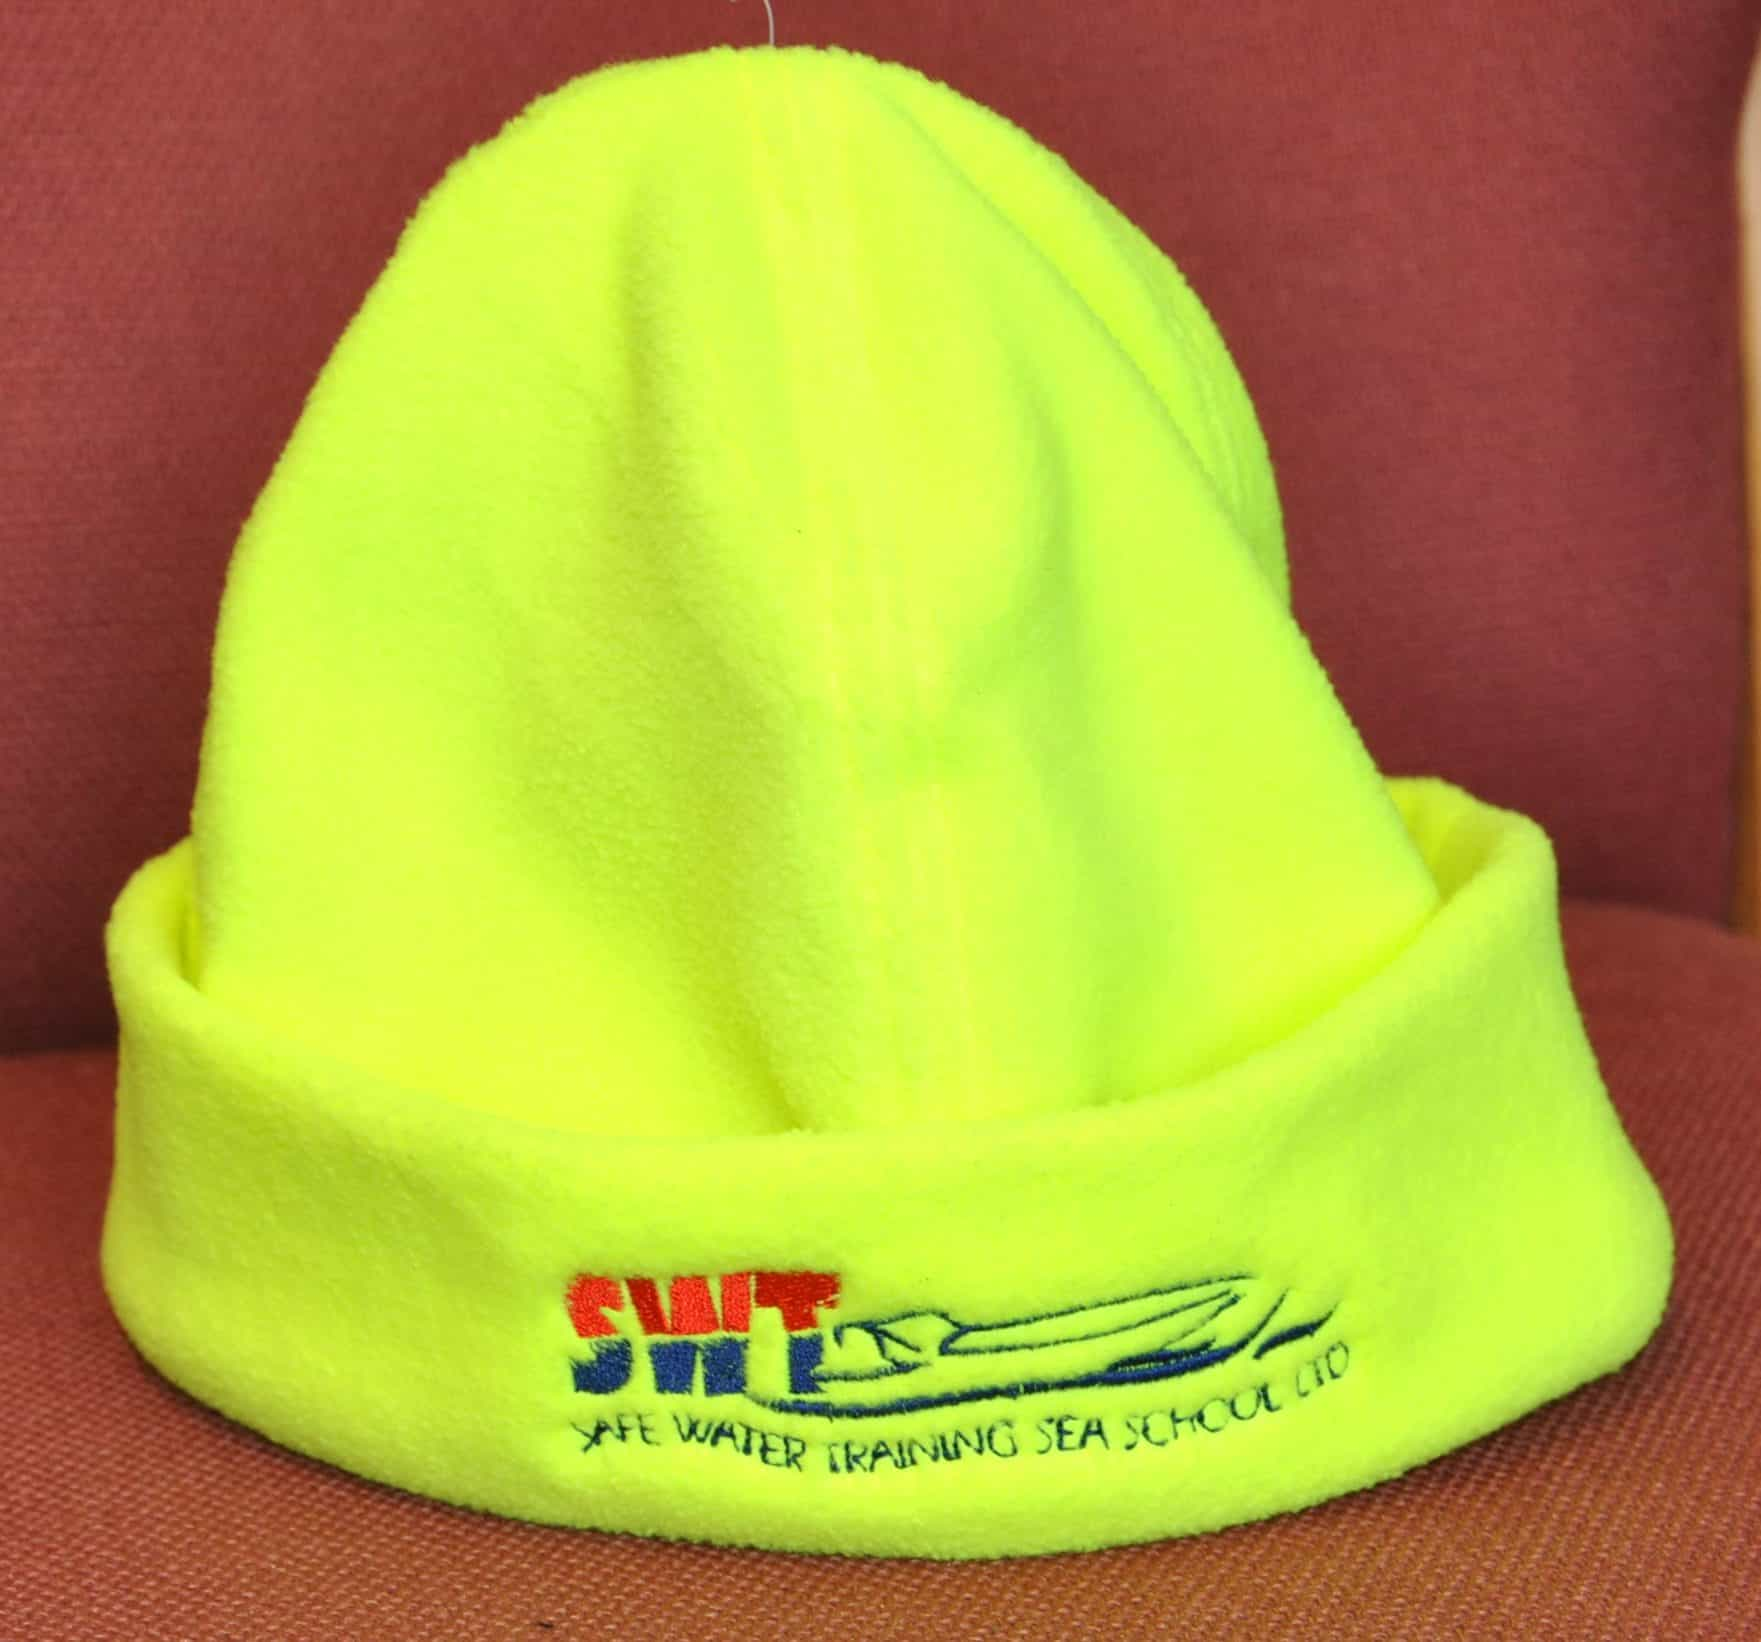 0f03291b7a1 SWT Cold Weather Hat - Safe Water Traininng Sea School LTD